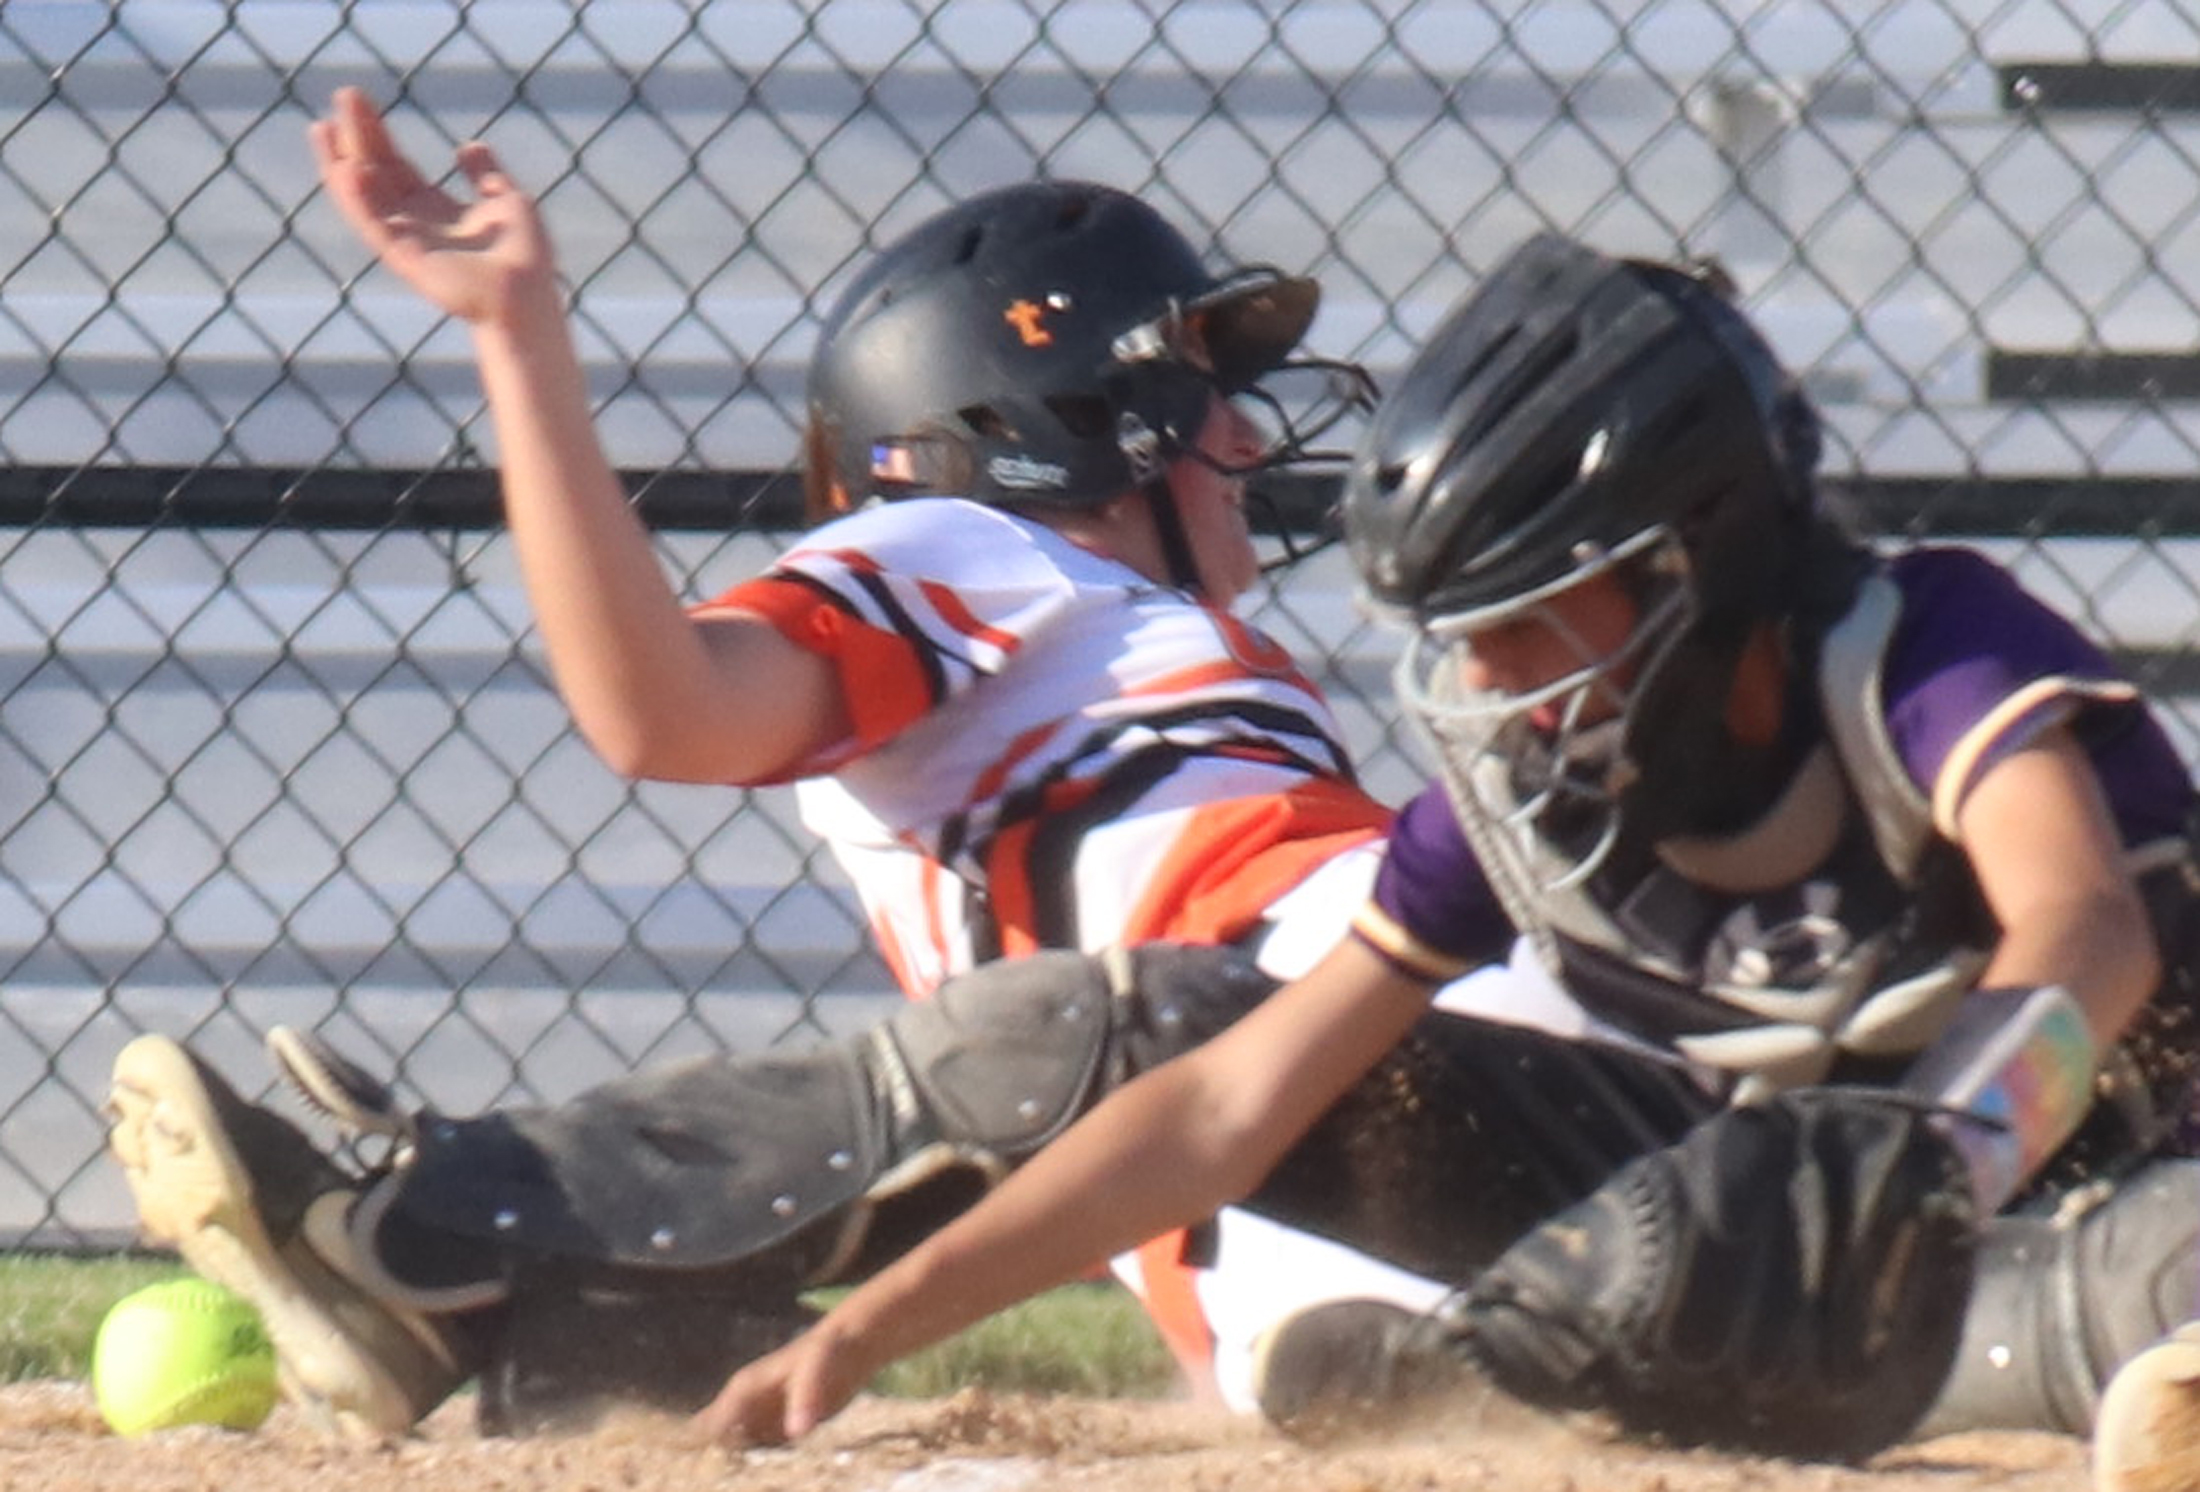 Comets go 3-1 at NFV Tourney, lead NEIC after win over Vikings